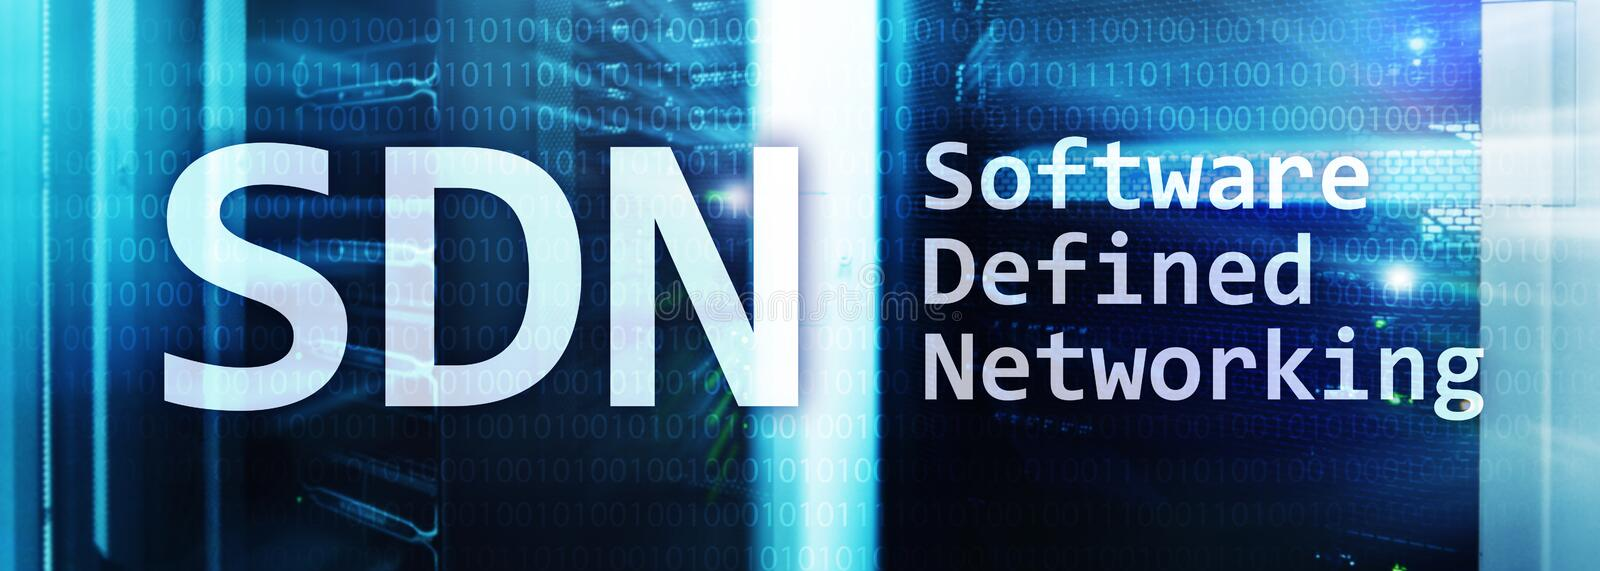 SDN, Software defined networking concept on modern server room background.  royalty free illustration